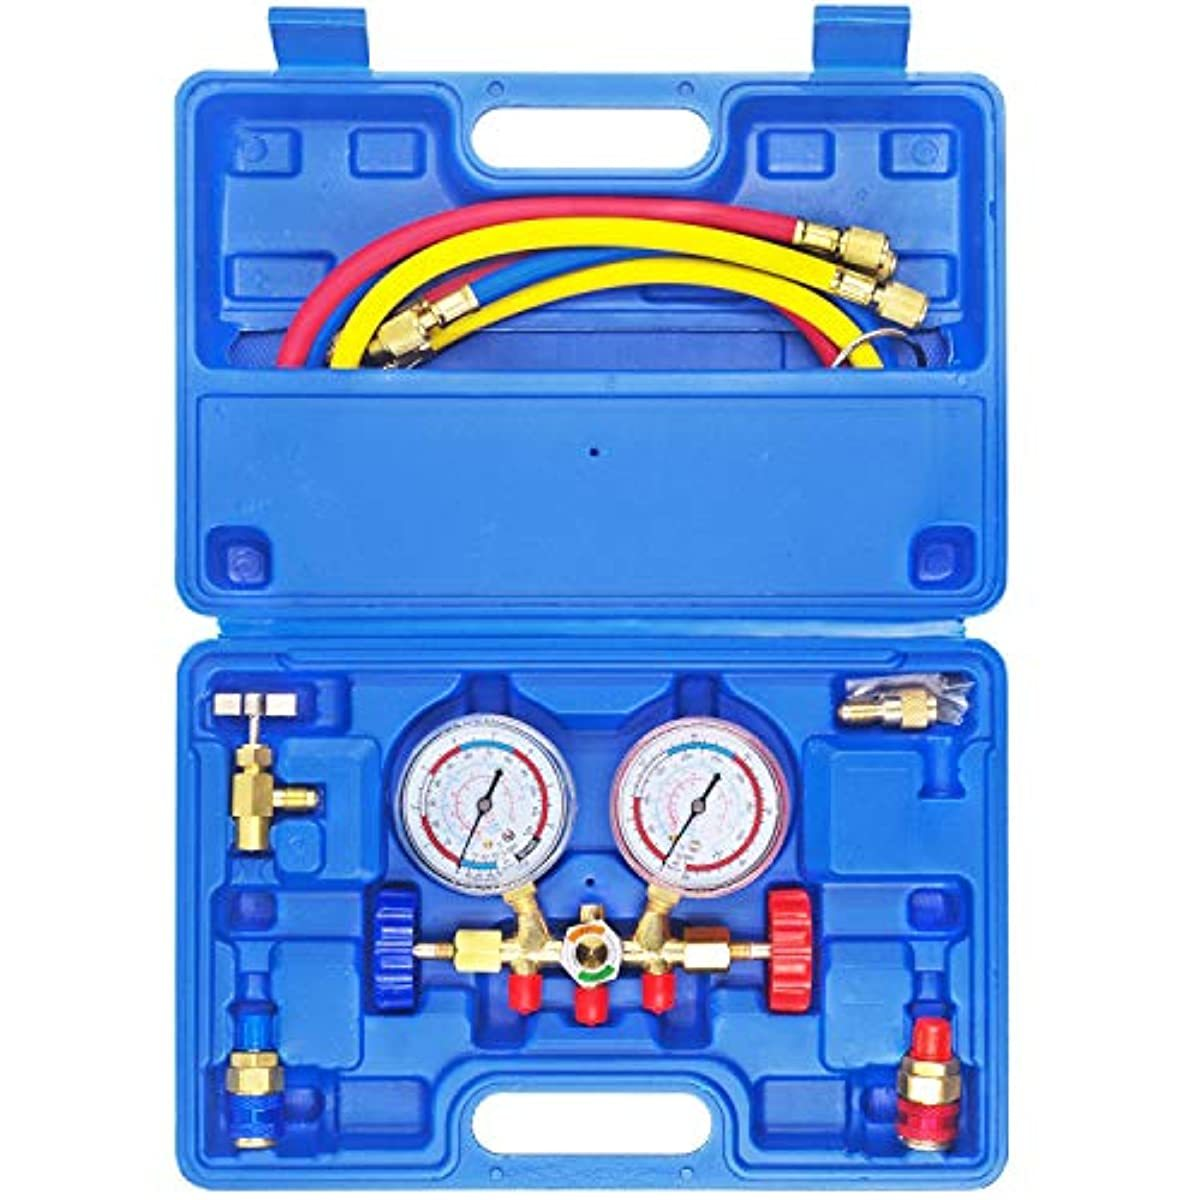 JIFETOR 3 Way AC Manifold Gauge Set, HVAC Diagnostic Freon Charging Tool for Auto Household R12 R22 R404A R134A Refrigerant, Quick Couplers Acme Adapter Valve Core Tool (3FT Hose, Can Tap, Blue Case)